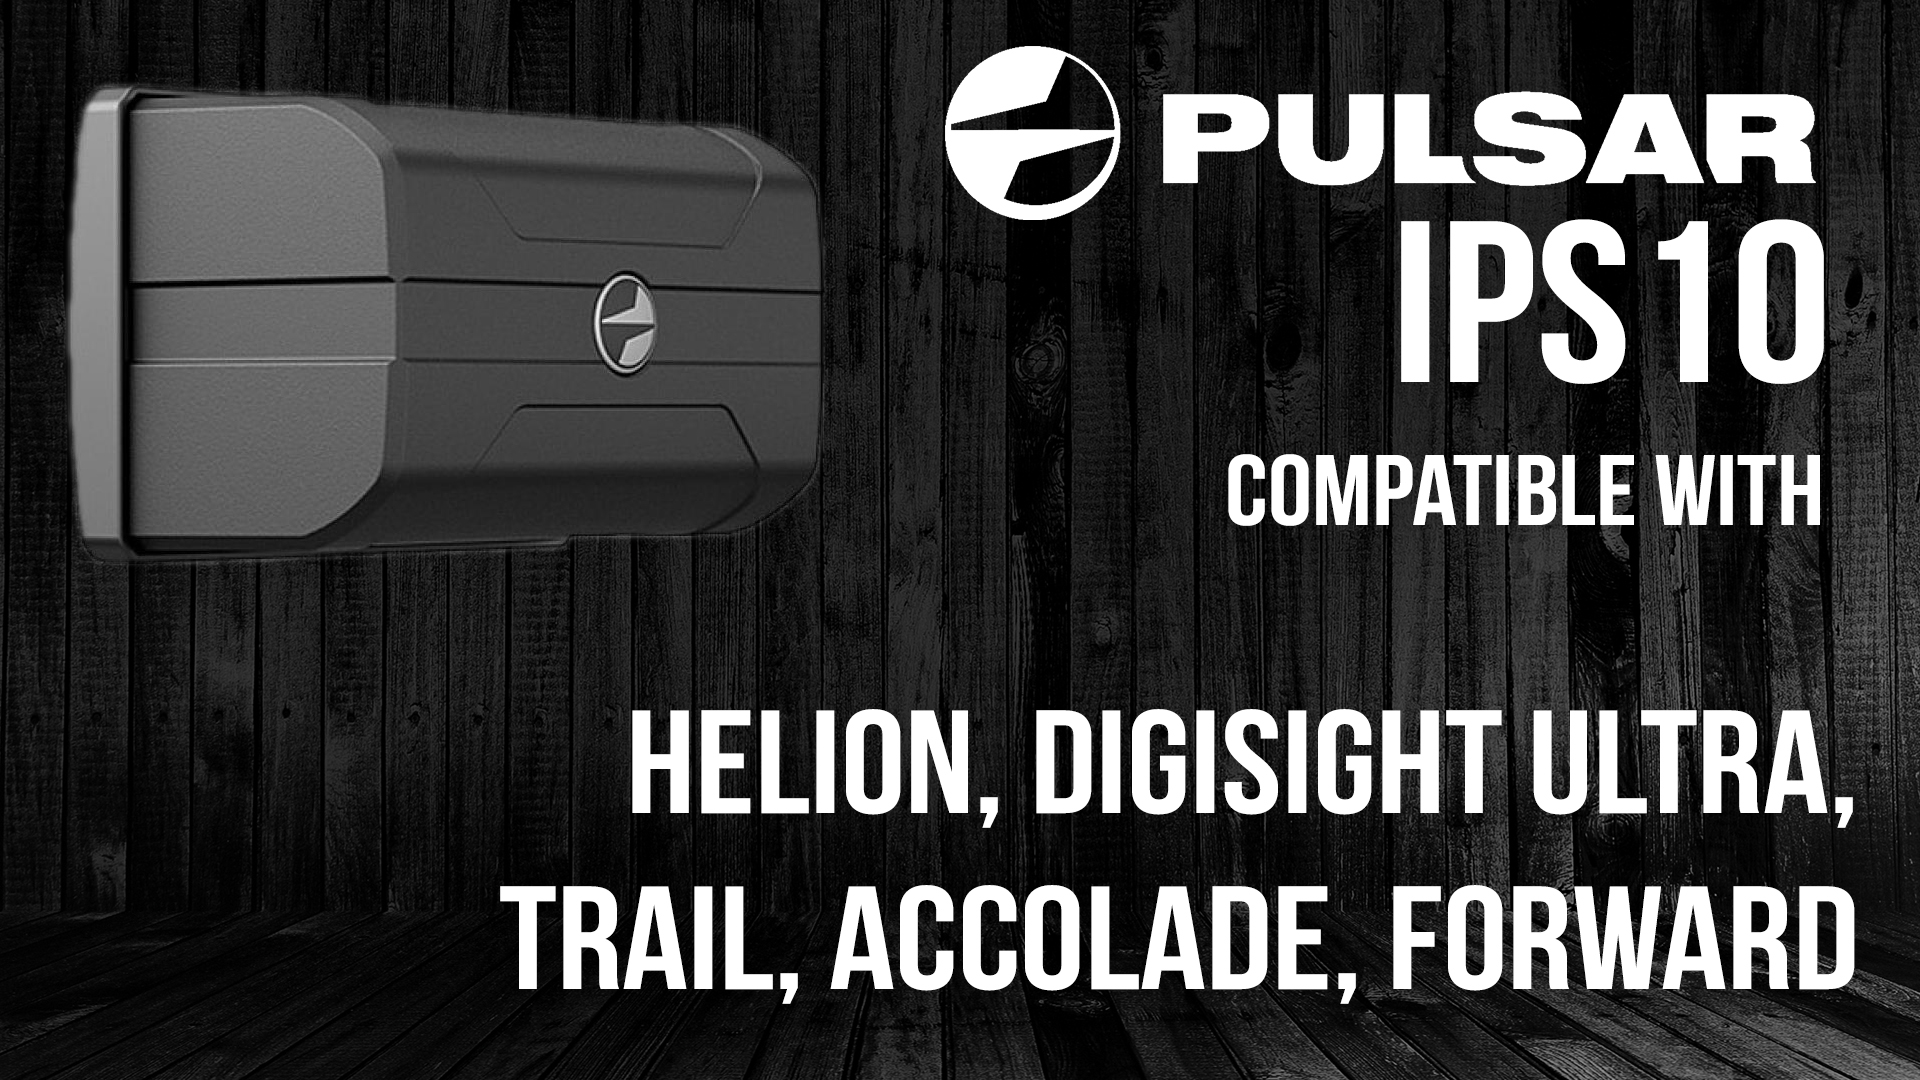 Pulsar IPS10 Compatibility